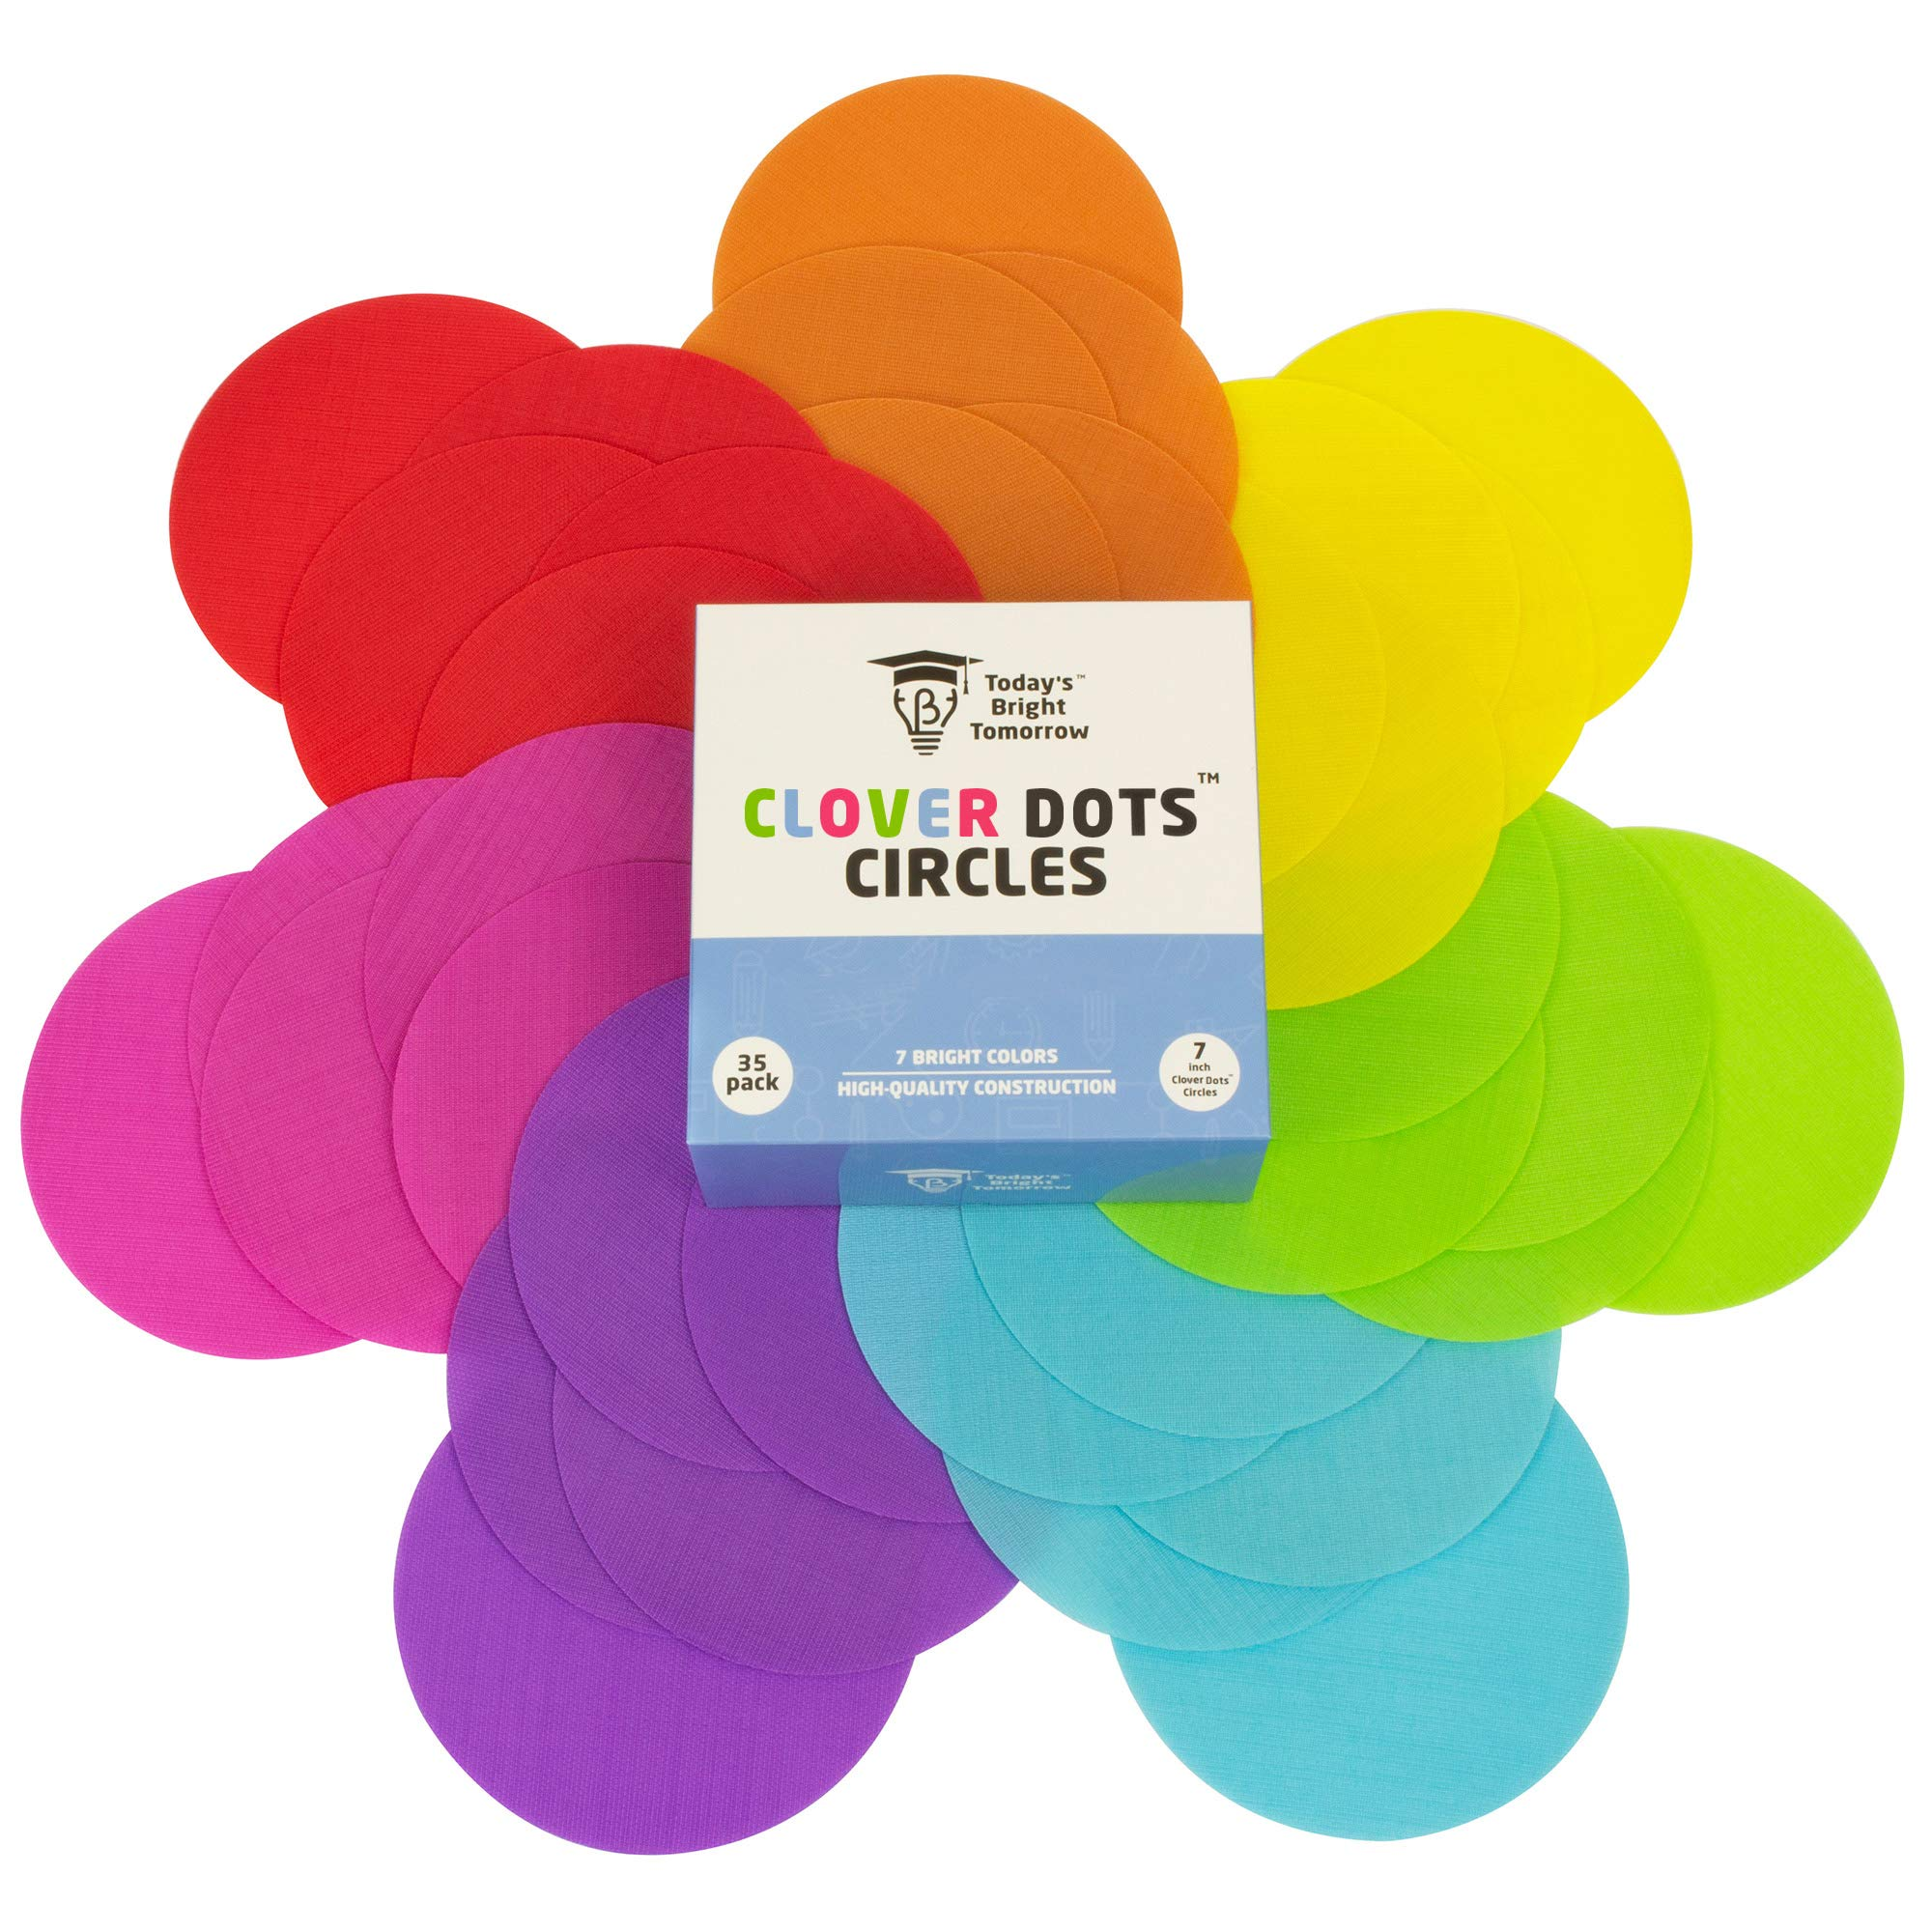 CLOVER DOTS, 7 inch Large Carpet Spot Circles, 35 Sitting Markers per Pack for Teachers and Children in Kindergarten and Preschool Classrooms, 7 Bright Colors by CLOVER DOTS